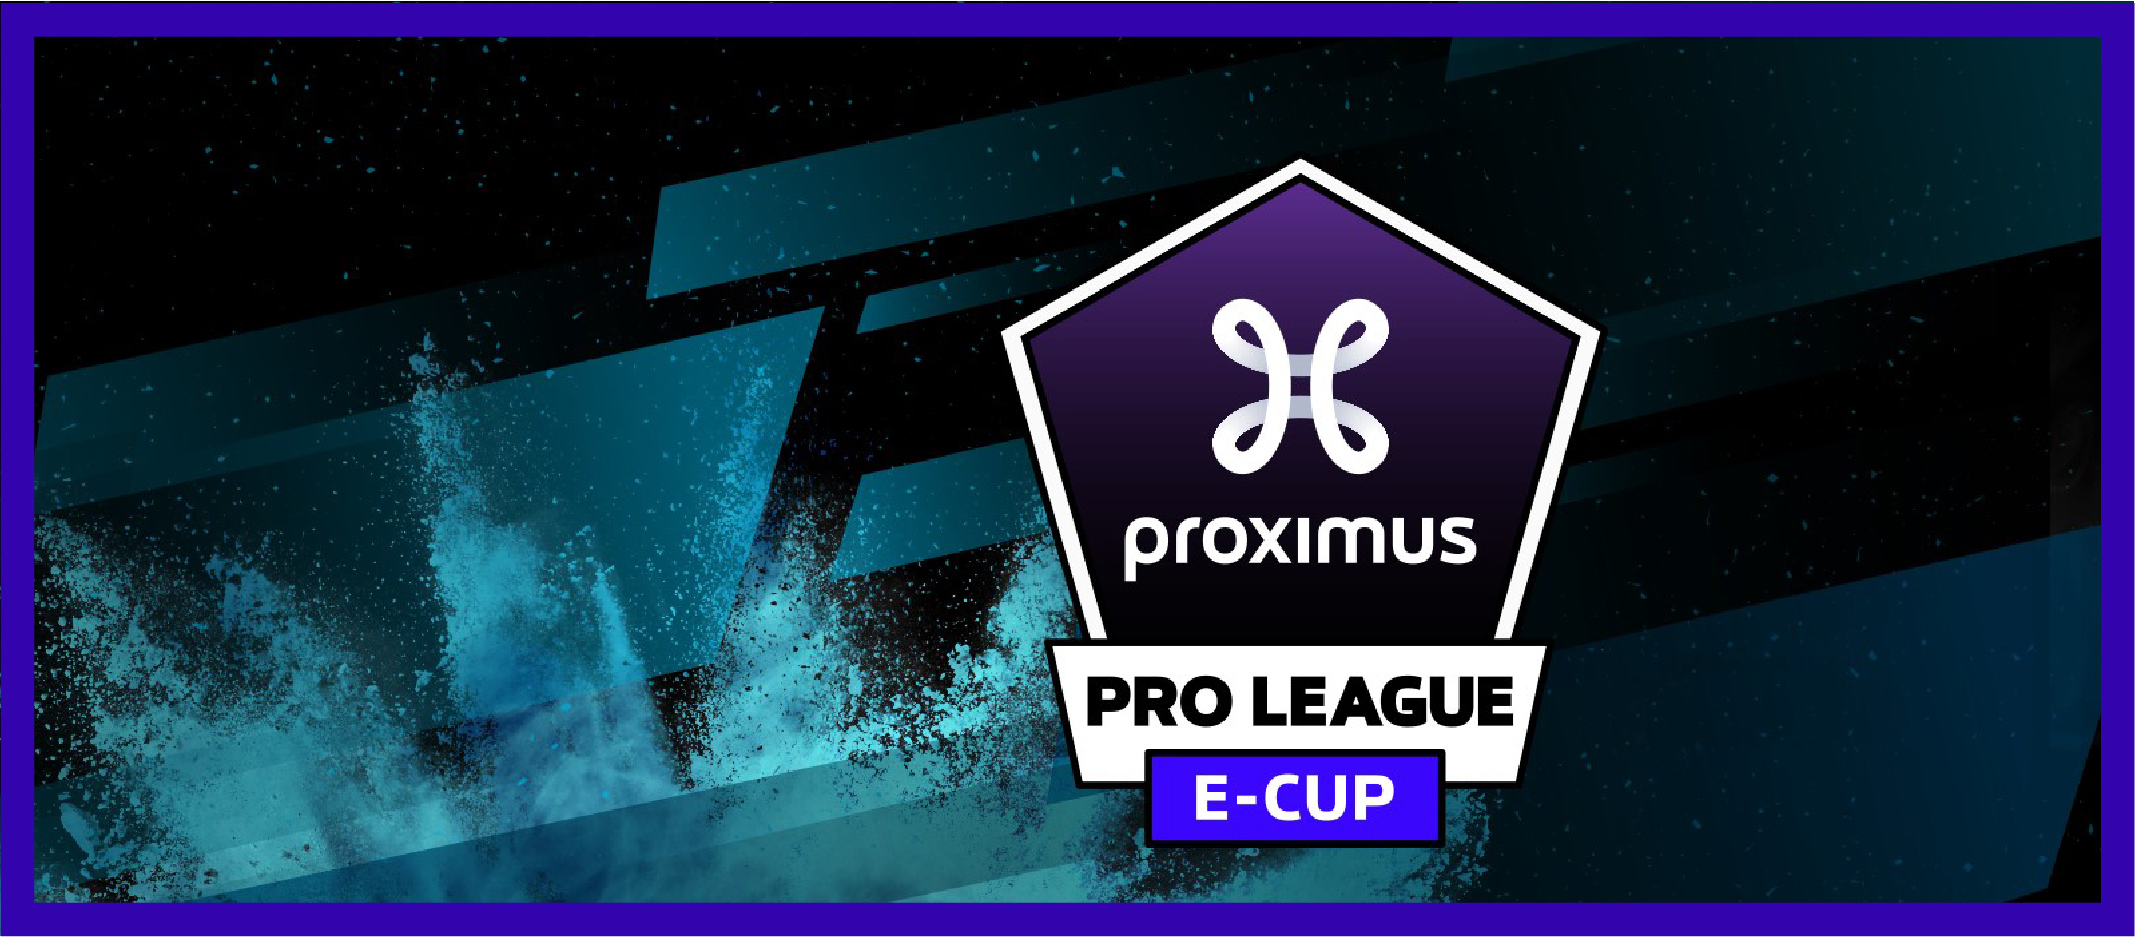 how Proximus created a digital fan experience, spawning brand activation for sponsors